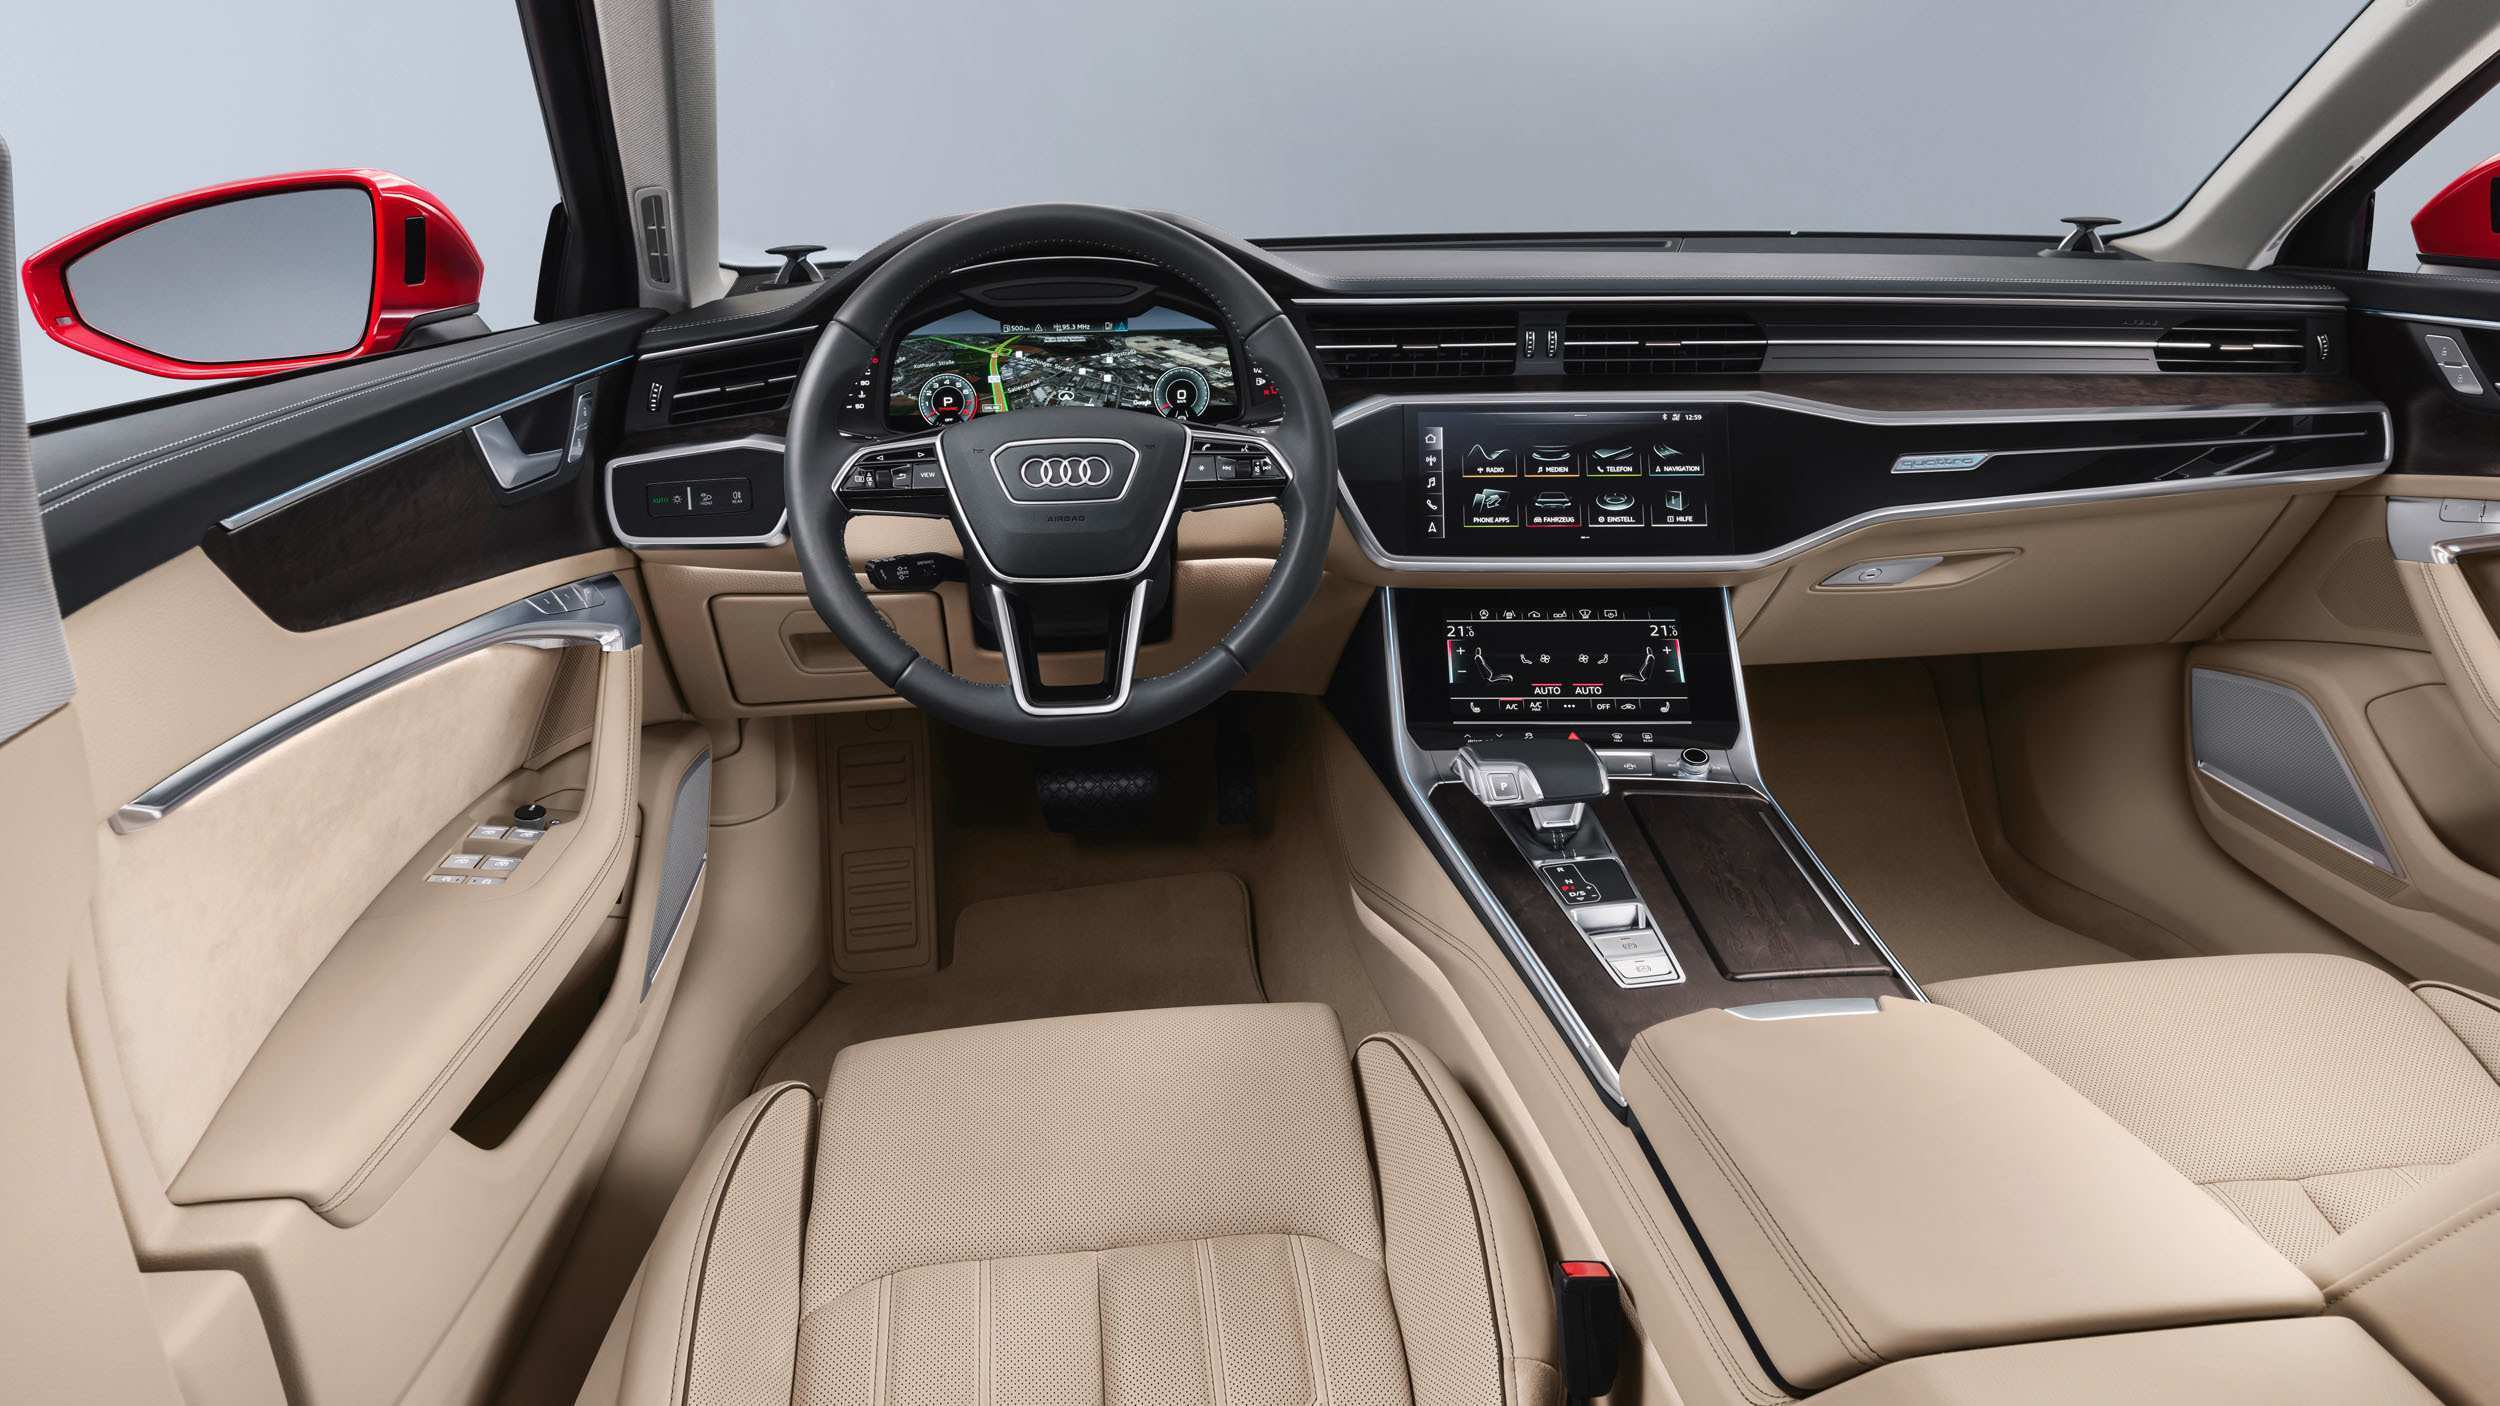 52 Gallery of 2019 Audi A6 Msrp Reviews for 2019 Audi A6 Msrp